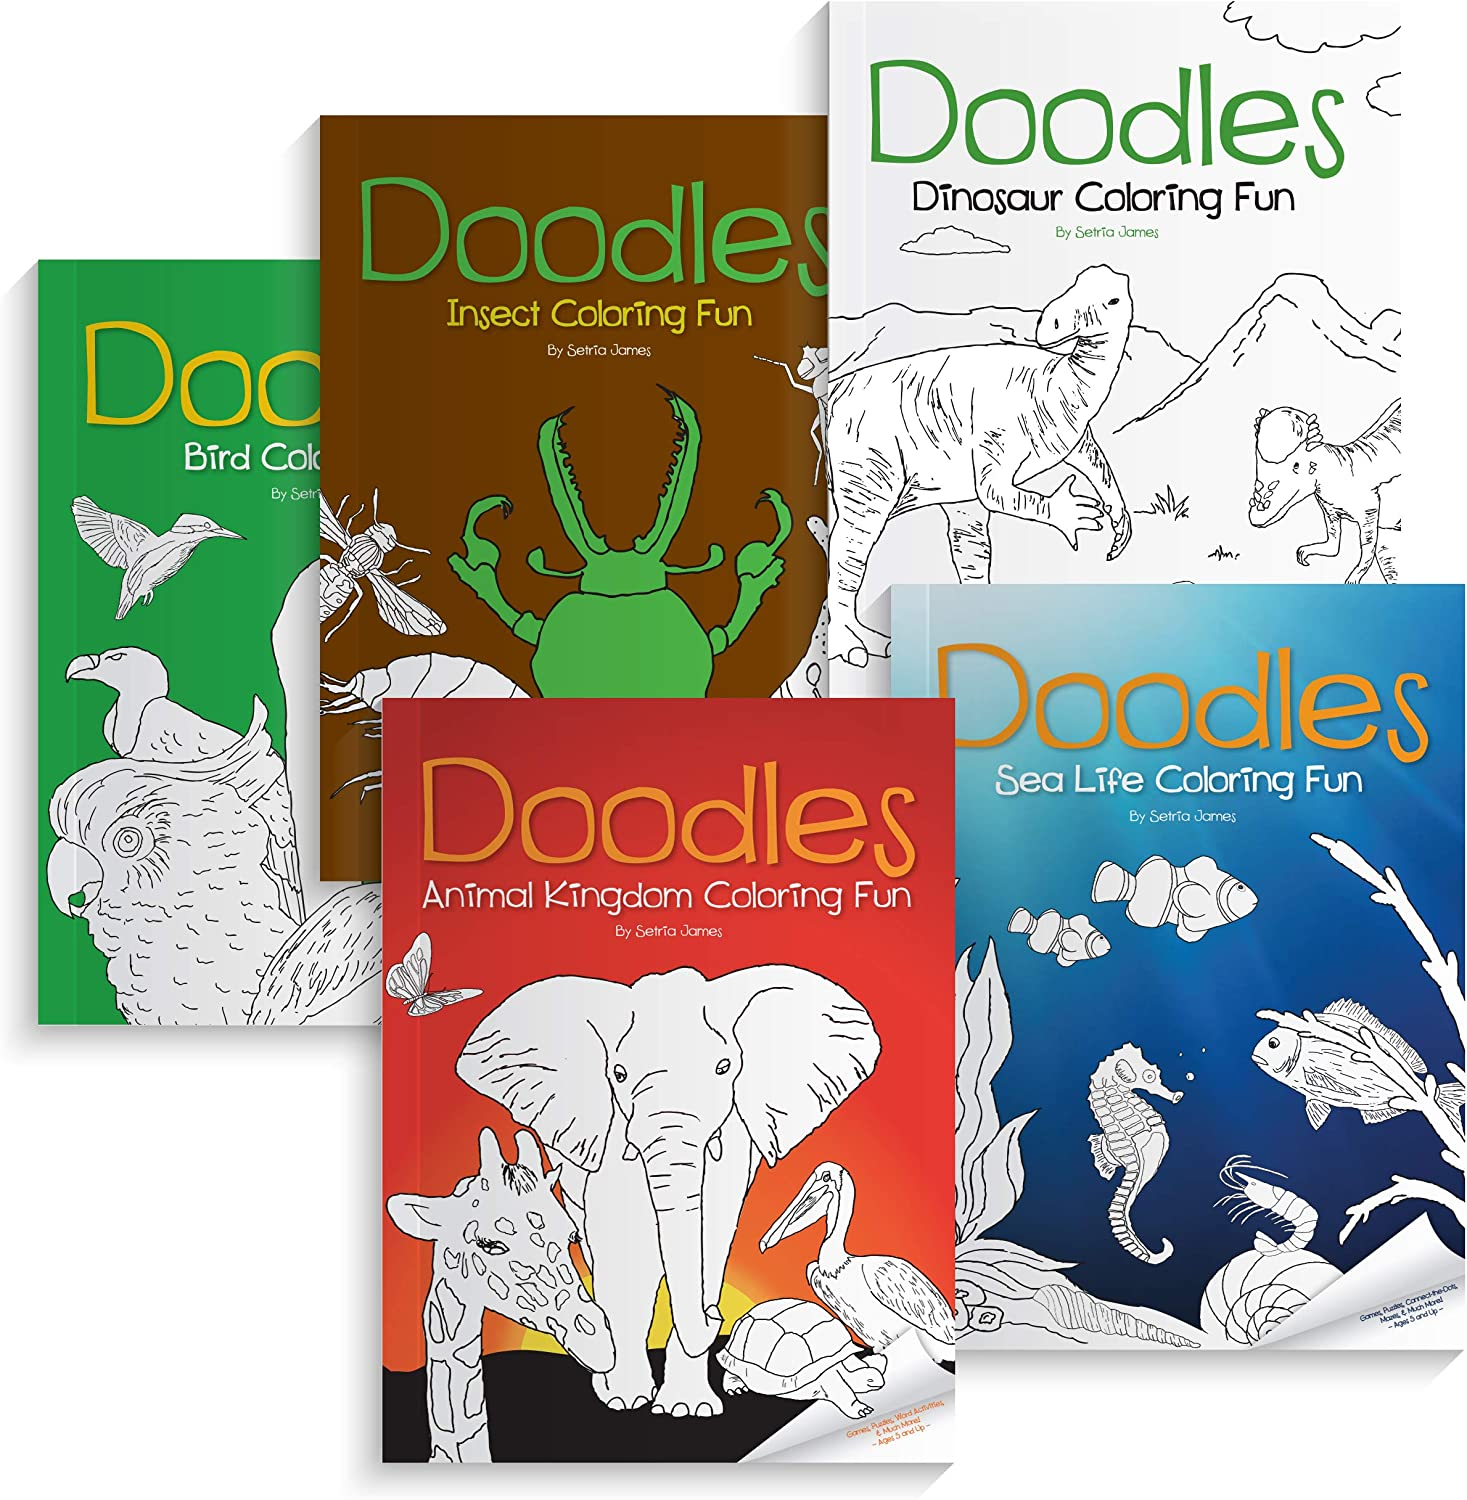 Animal Coloring Book Set - Kids Poster, Games, and Decorations - Fun-Filled Pictures for Kindergarten, Preschool, Educational Classroom Settings - Bird, Dinosaur, Sea Life, Insect Drawing Fun